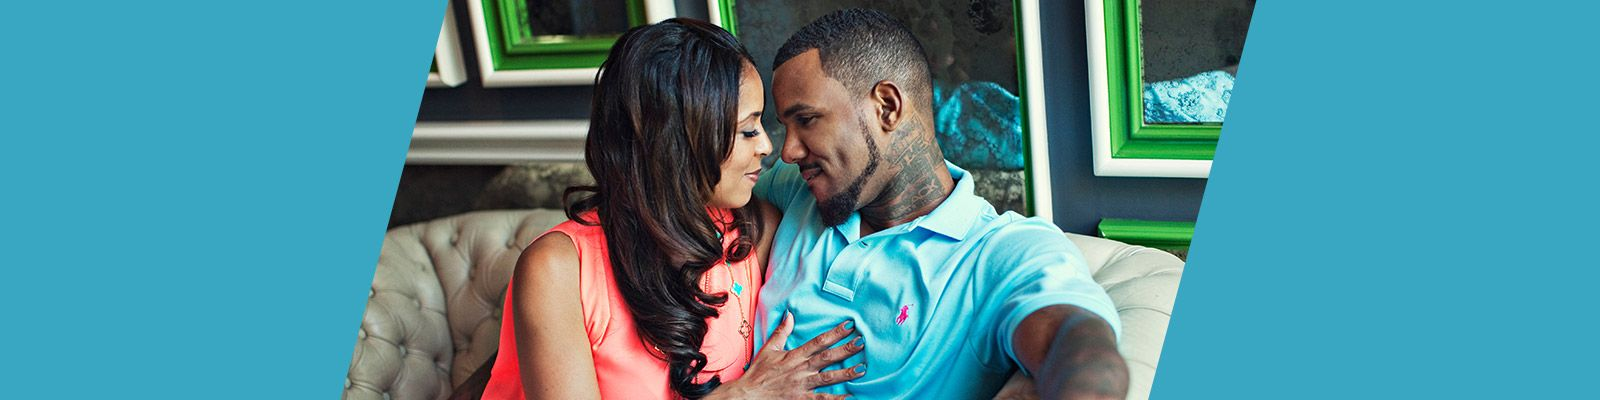 marrying the game full episodes free